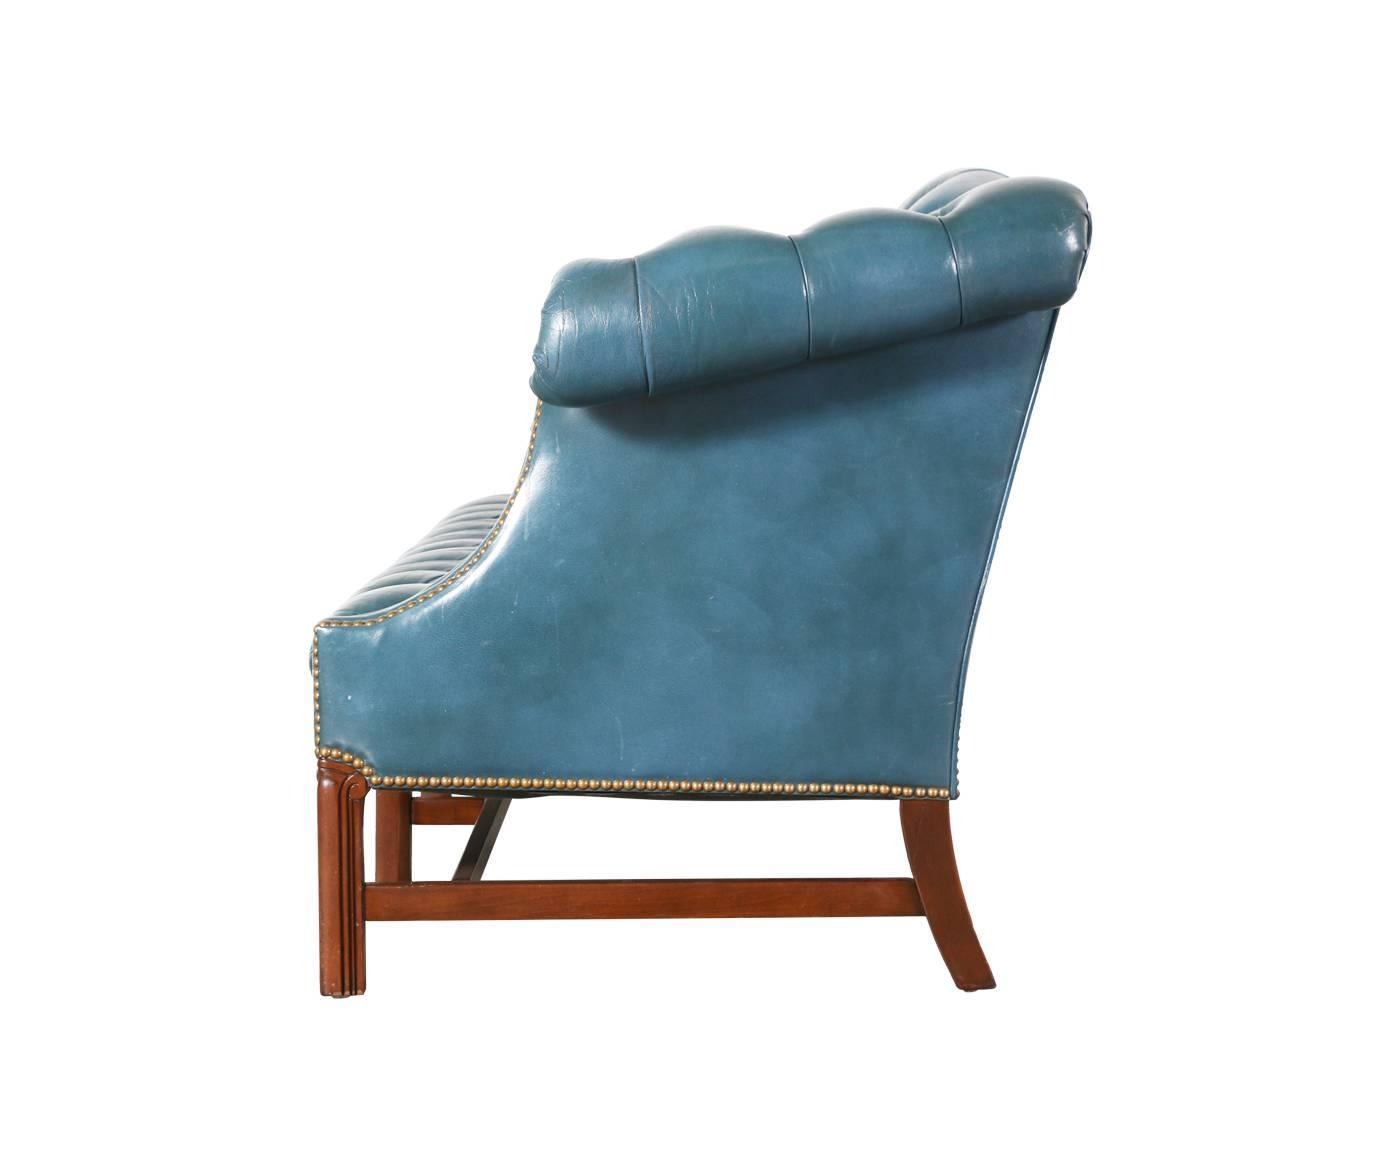 Vintage english leather teal blue chesterfield sofa for for Teal sofas for sale